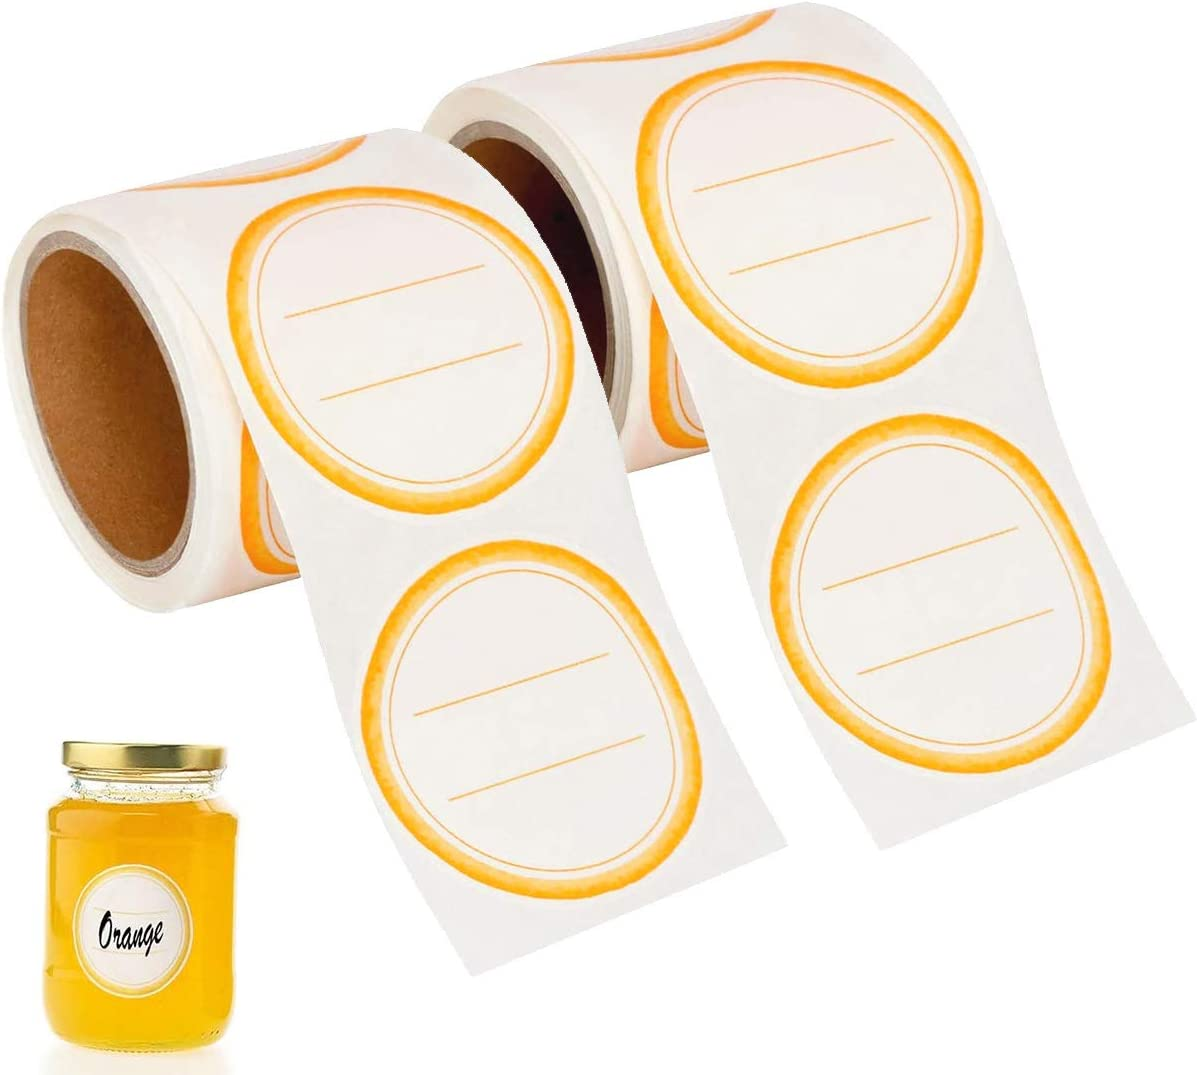 "200Pcs Canning Jar Dissolvable Labels, Canning Supplies Stickers, Homemade Food Storage Jam Labels for Mason Jar/Canning Lids, Canning Labels Wash Off in Seconds, (2"" Round-100pcs/roll) (Orange Peel)"